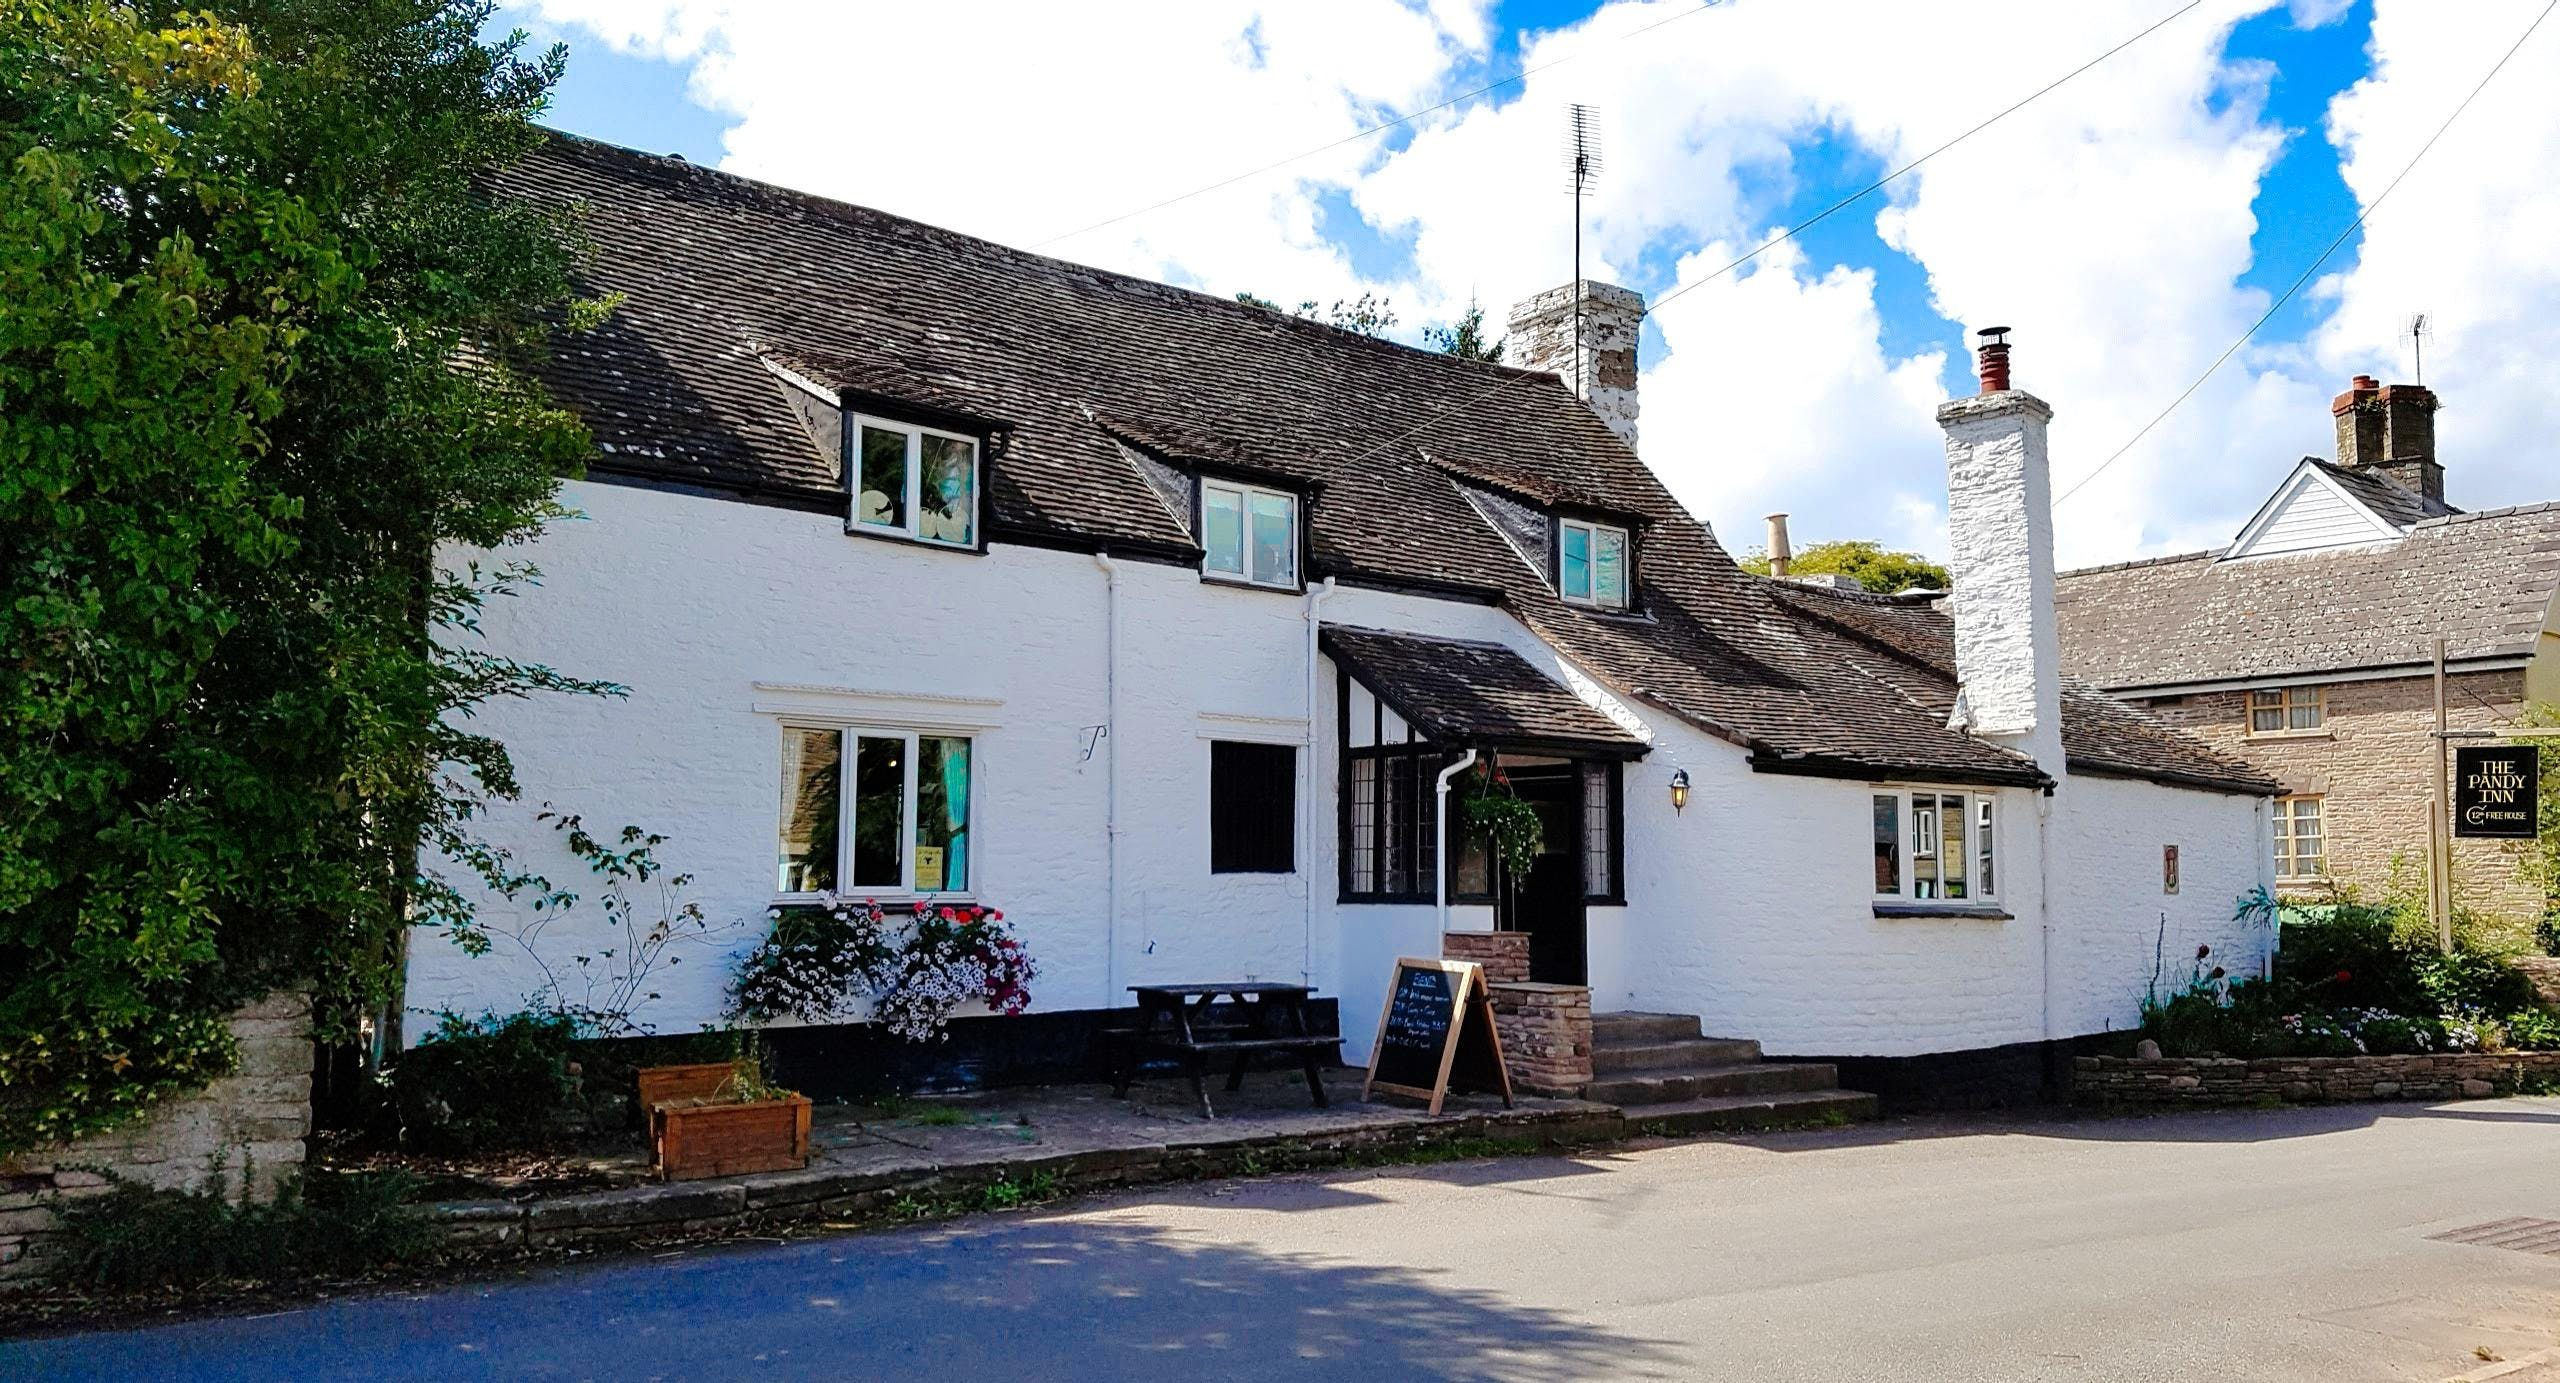 The Pandy Inn Hereford image 3